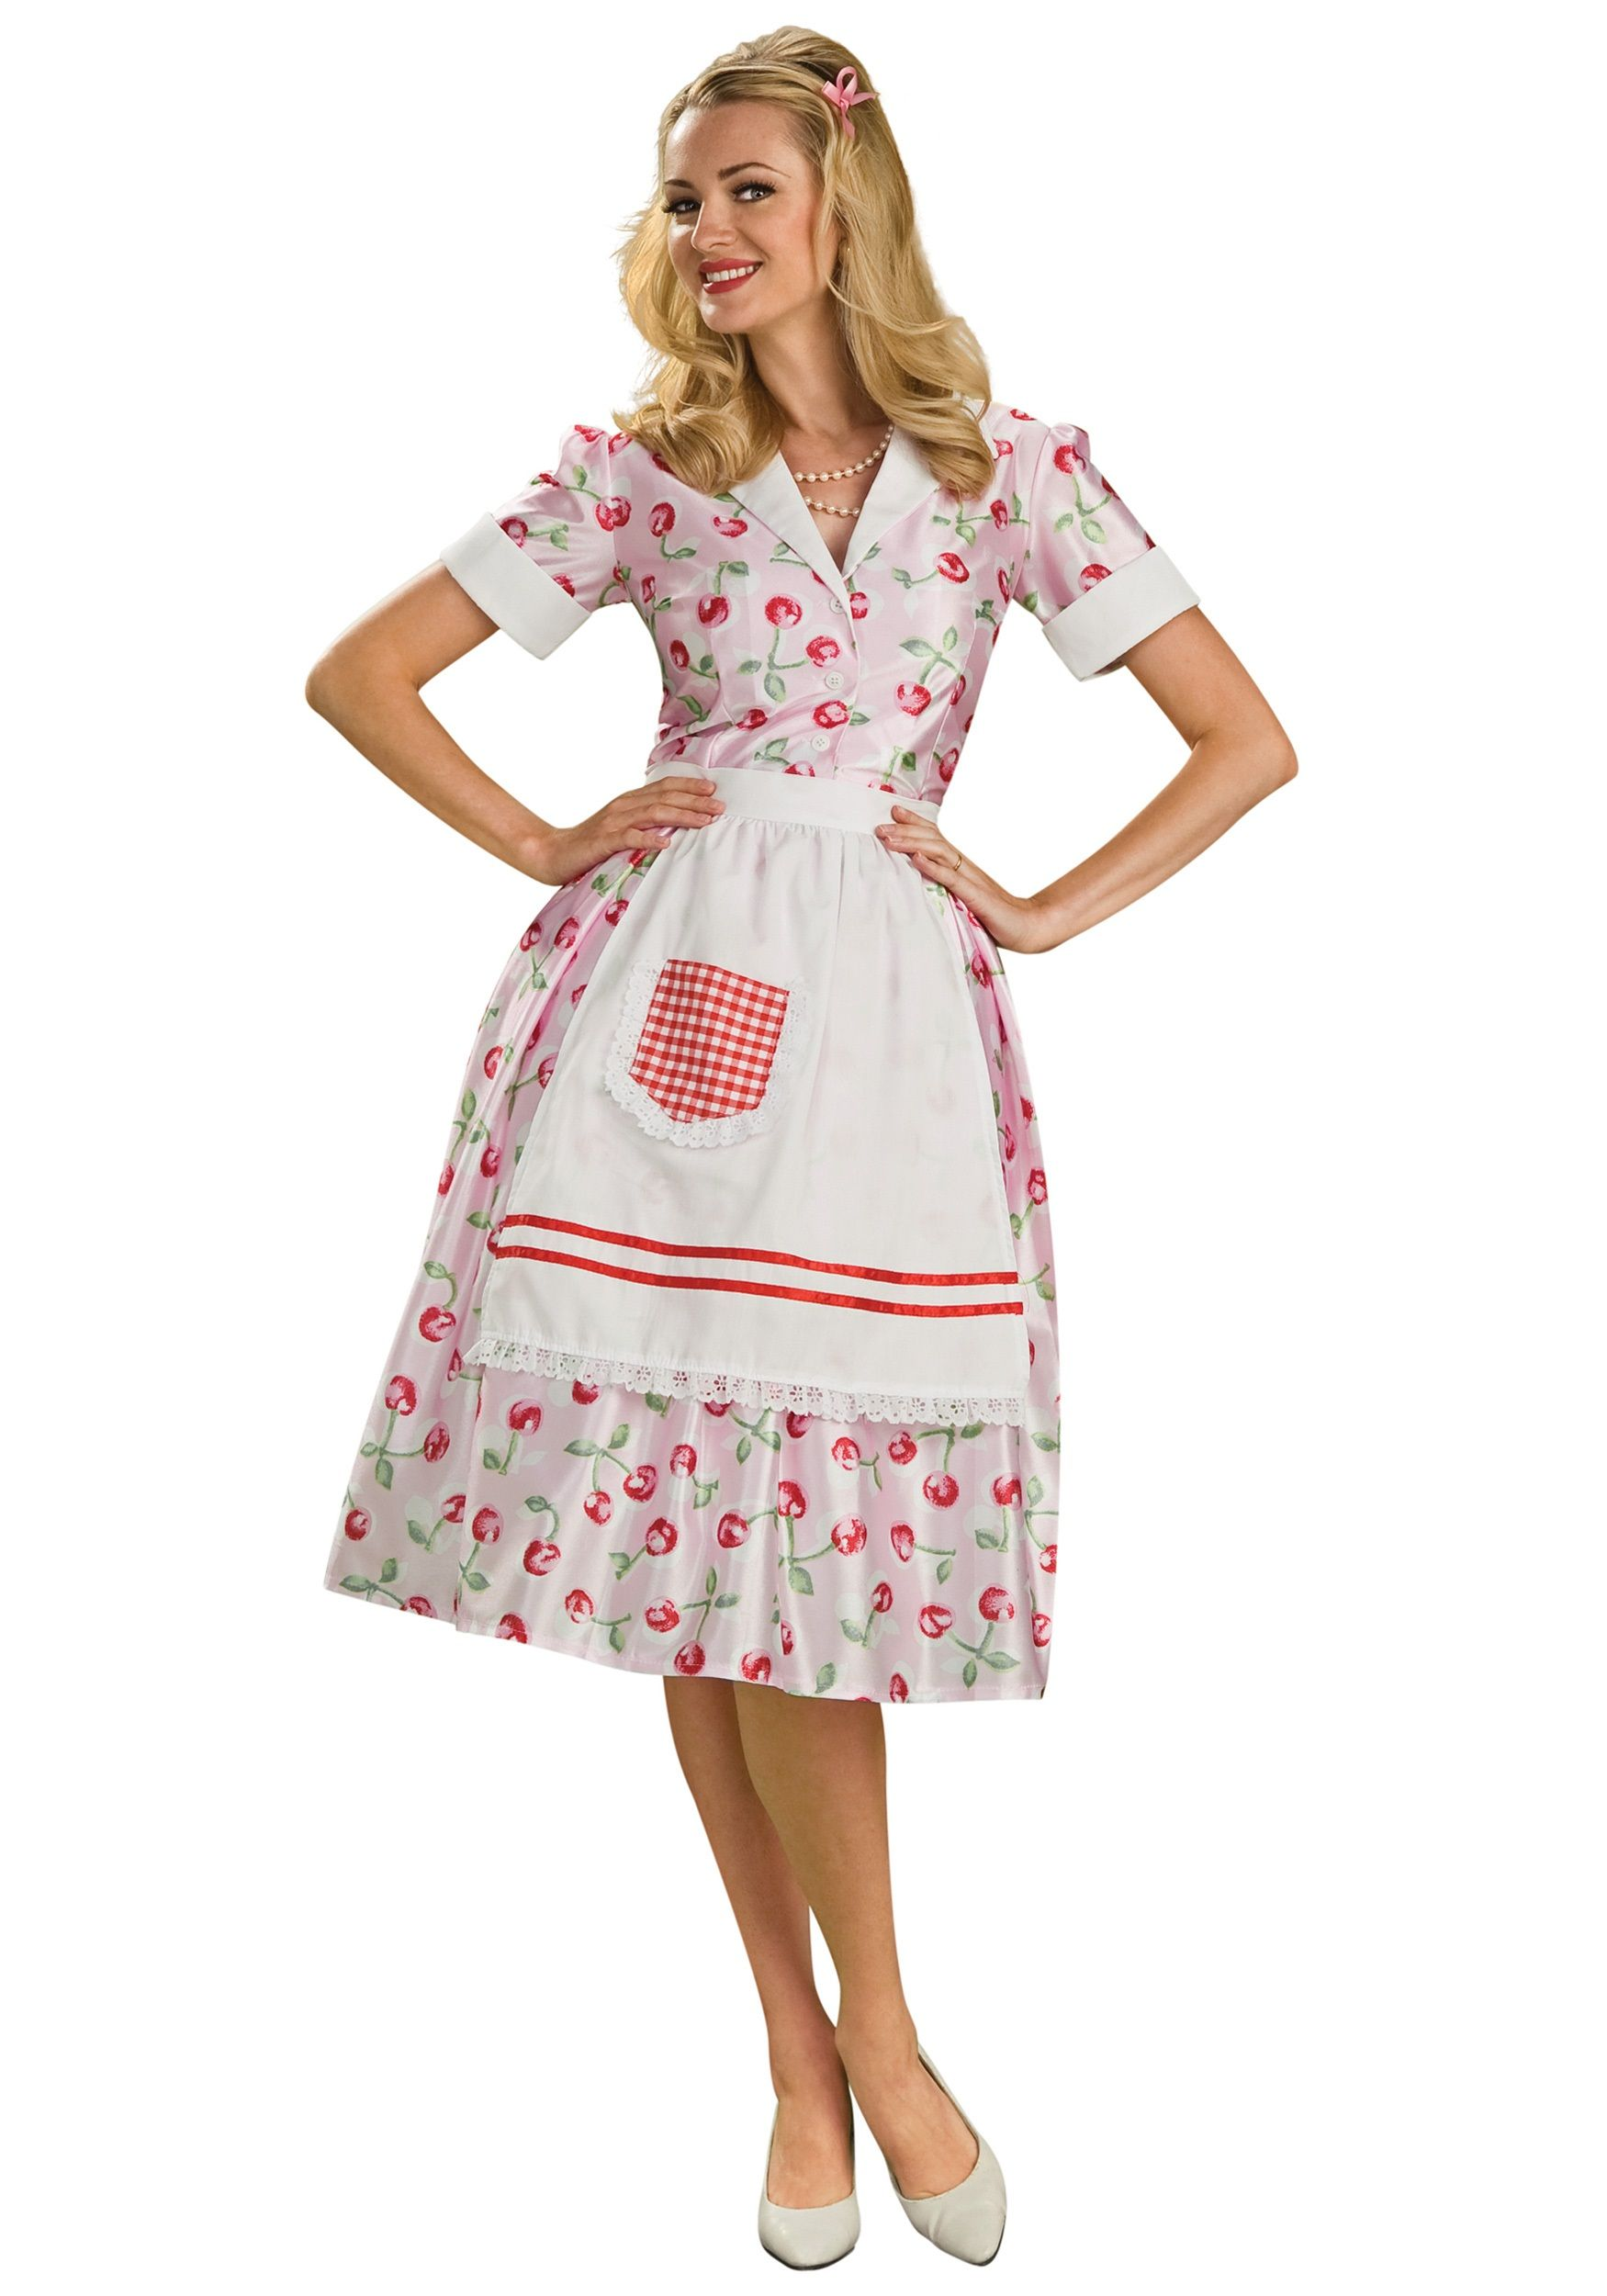 50s Housewife Costume   new me   Costumes, Housewife costume ... 299672538ed3